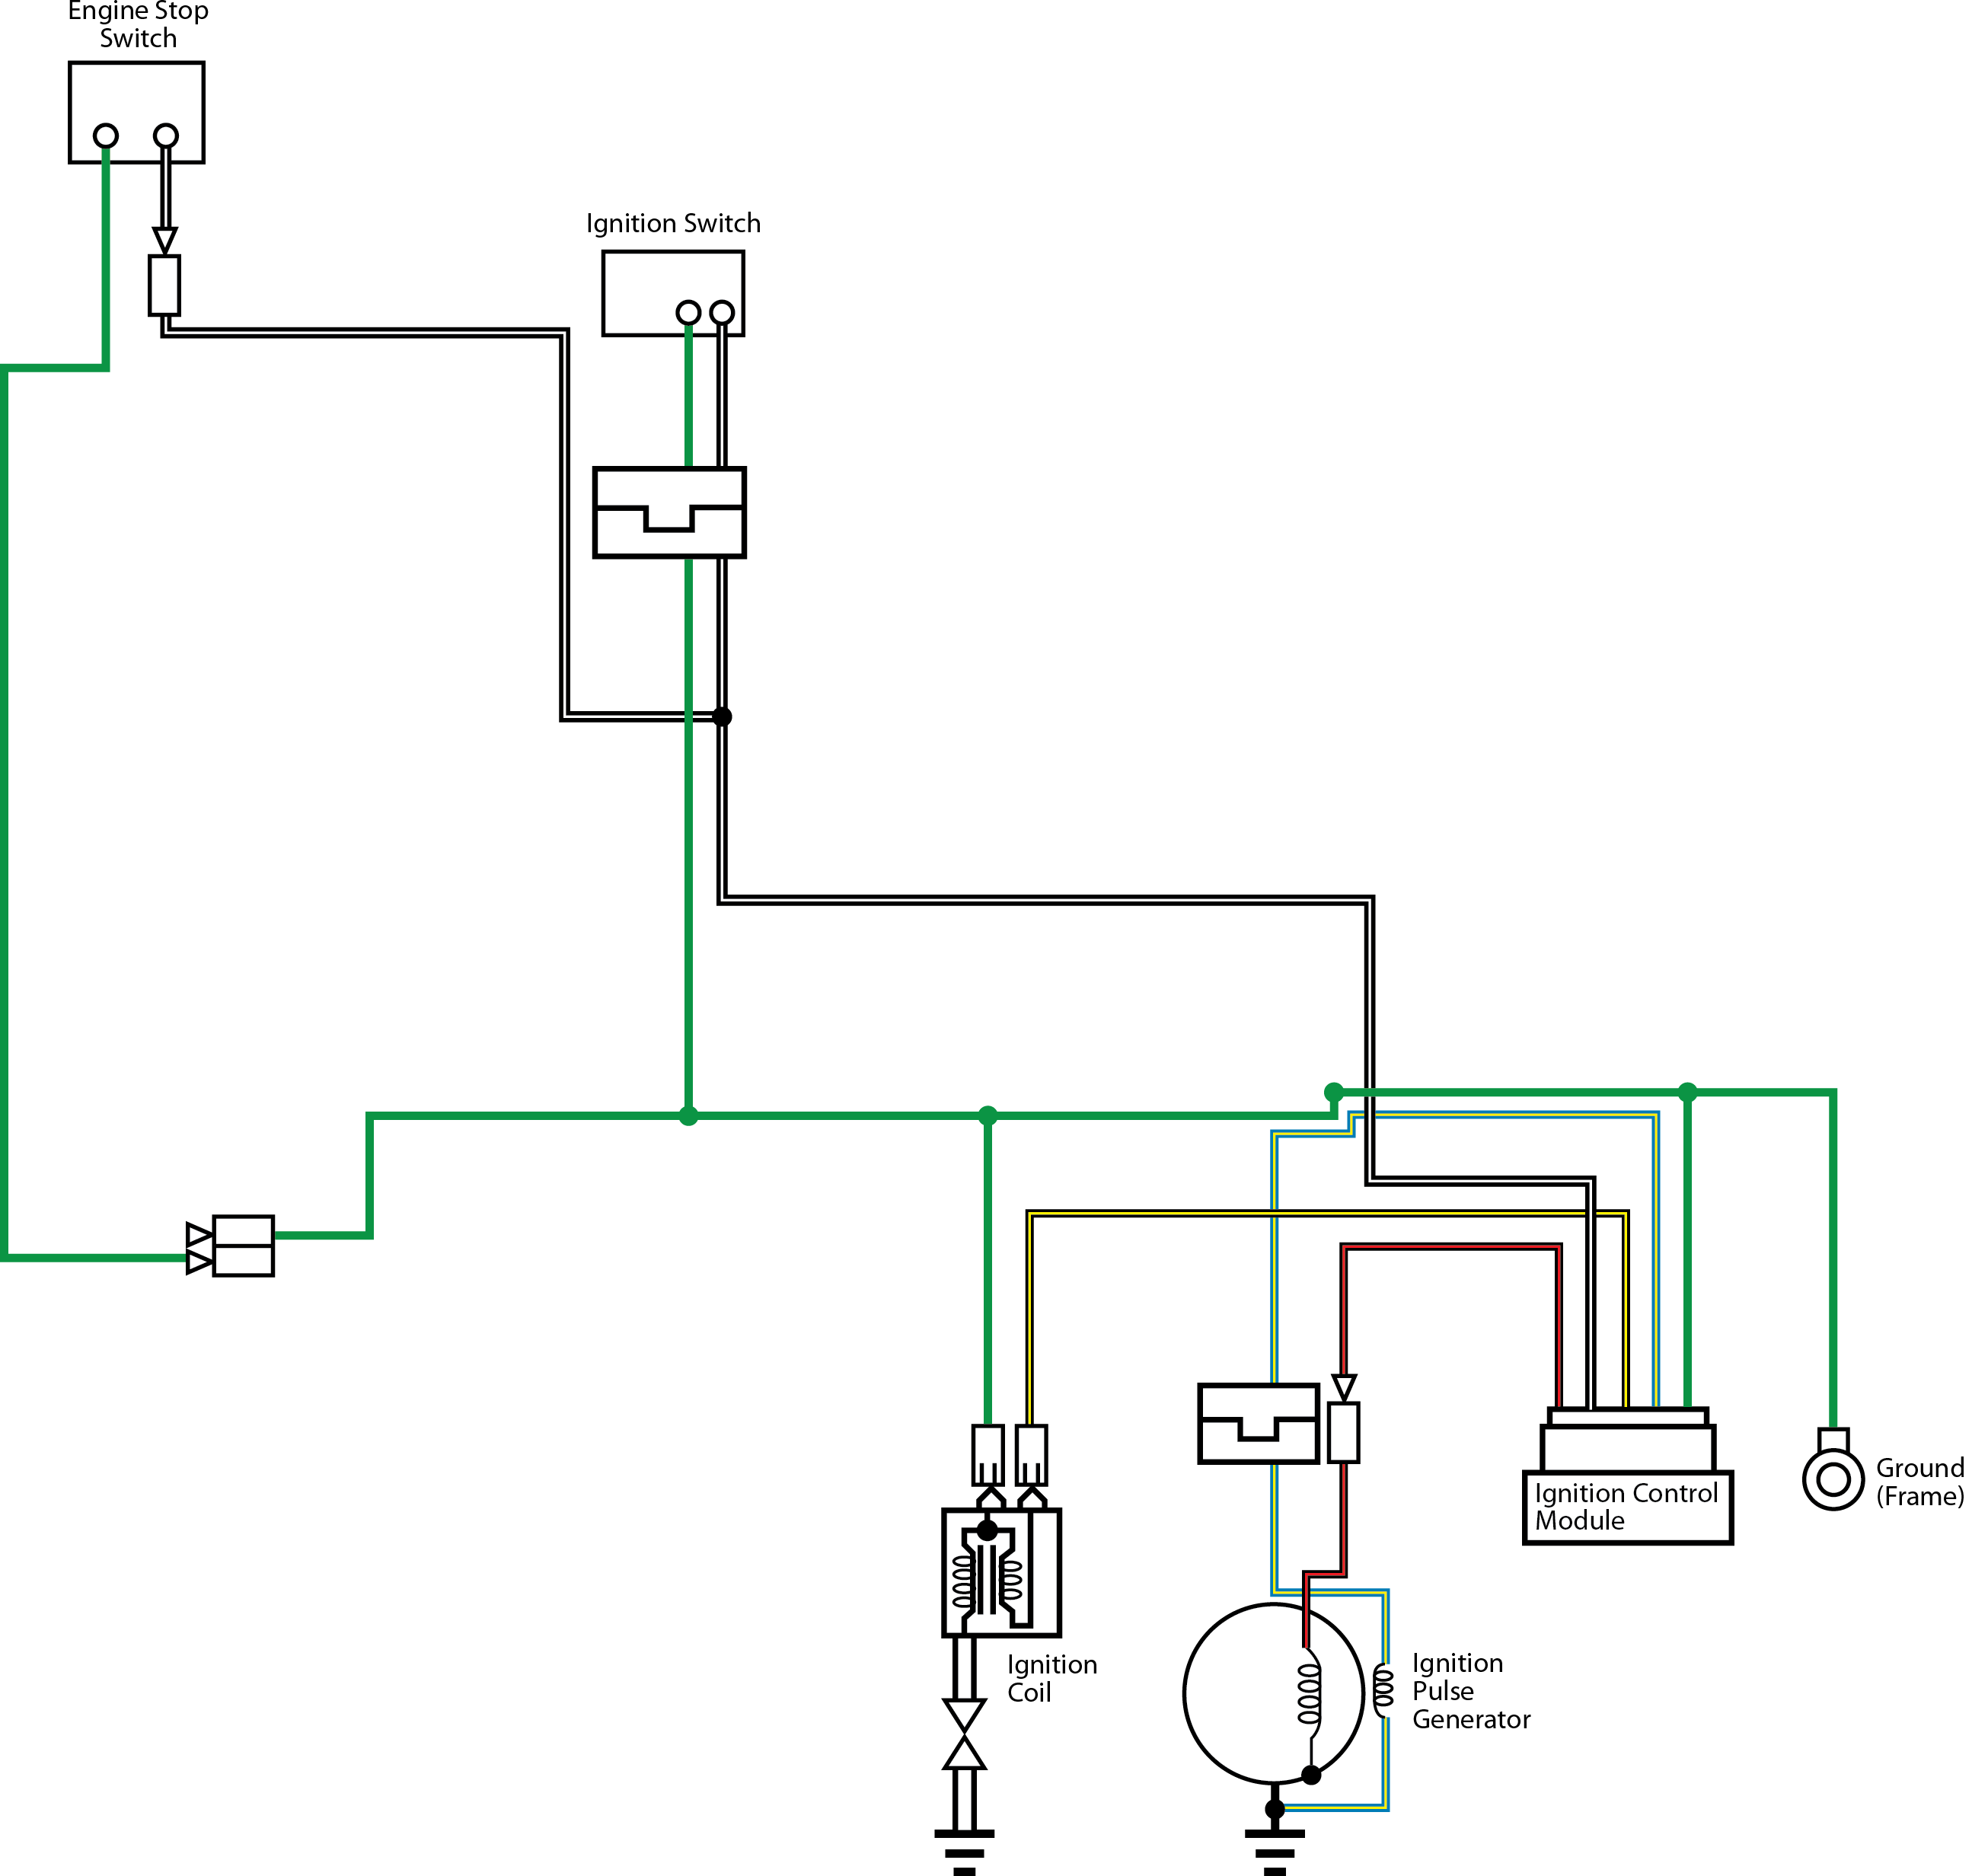 Click image for larger version. Name:  Z50R_XR_Hybrid_Streeet_Wiring_Stock.png Views: 10599 Size: Here is the wiring  diagram ...